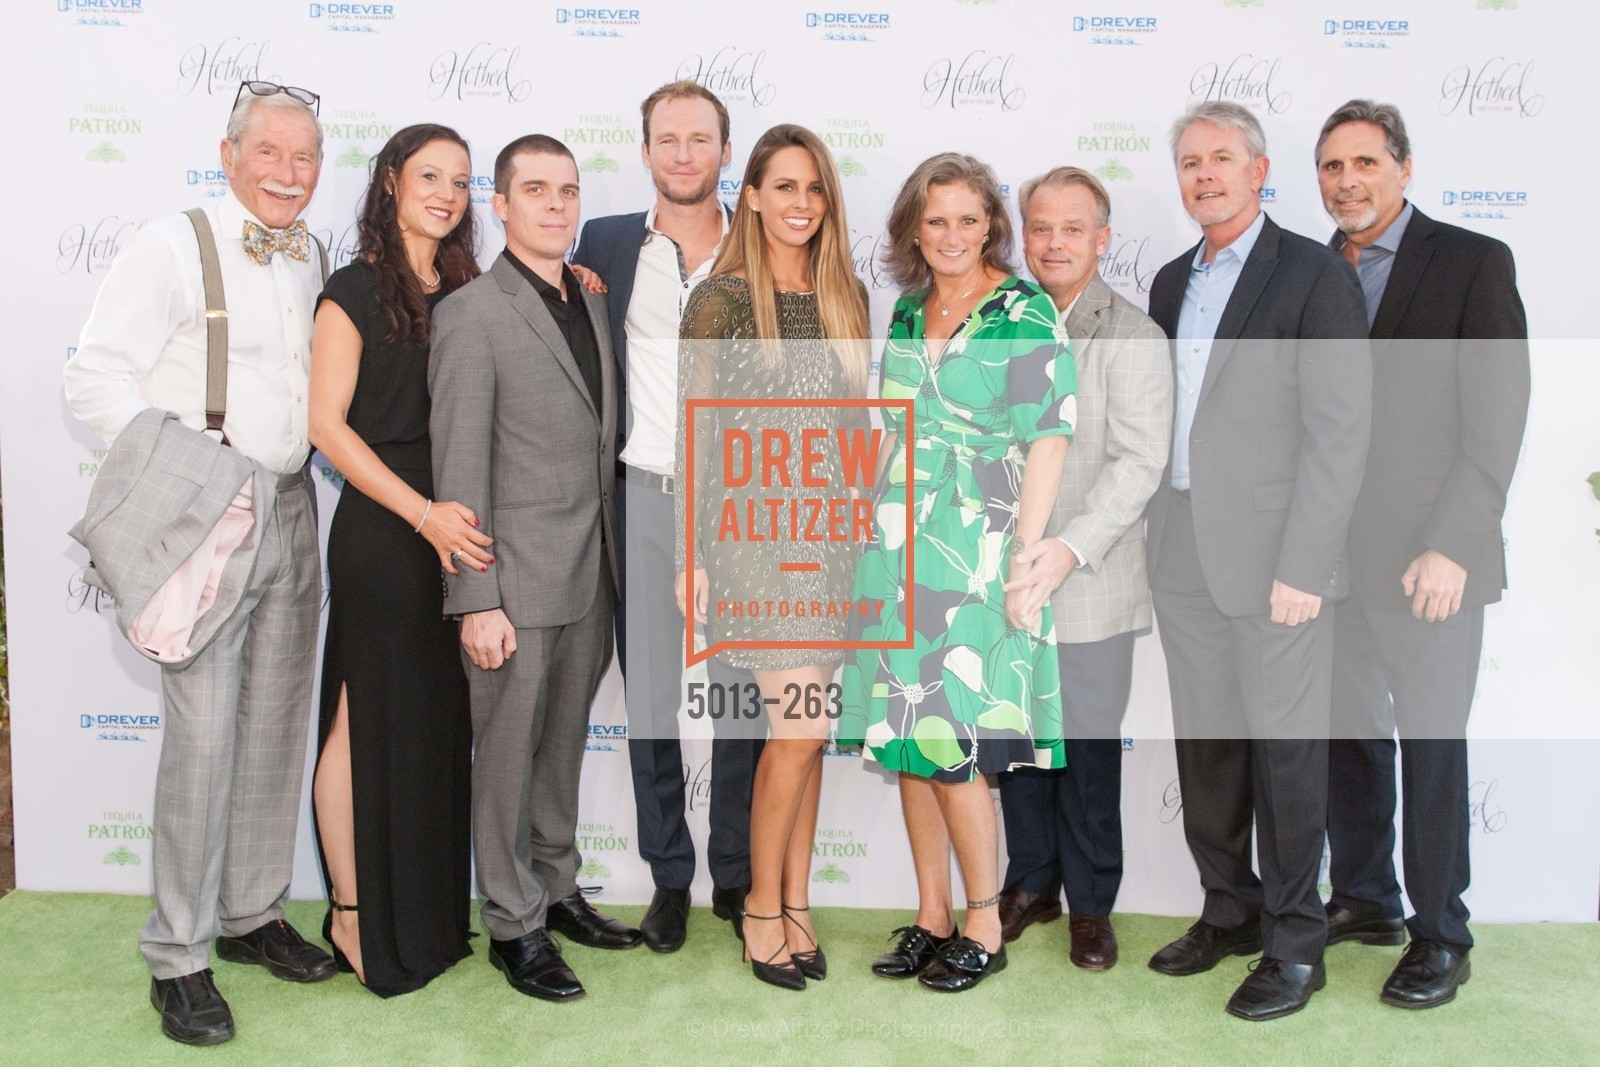 Maxwell Drever, Layne Drever, Jeremiah Drever, Noah Drever, Caitlin Miskel, Tiffany Baker, Mitchell Drever, Steve Yudson, Drever Family Foundation Presents The 2015 Hotbed Benefit, Private, August 22nd, 2015,Drew Altizer, Drew Altizer Photography, full-service agency, private events, San Francisco photographer, photographer california